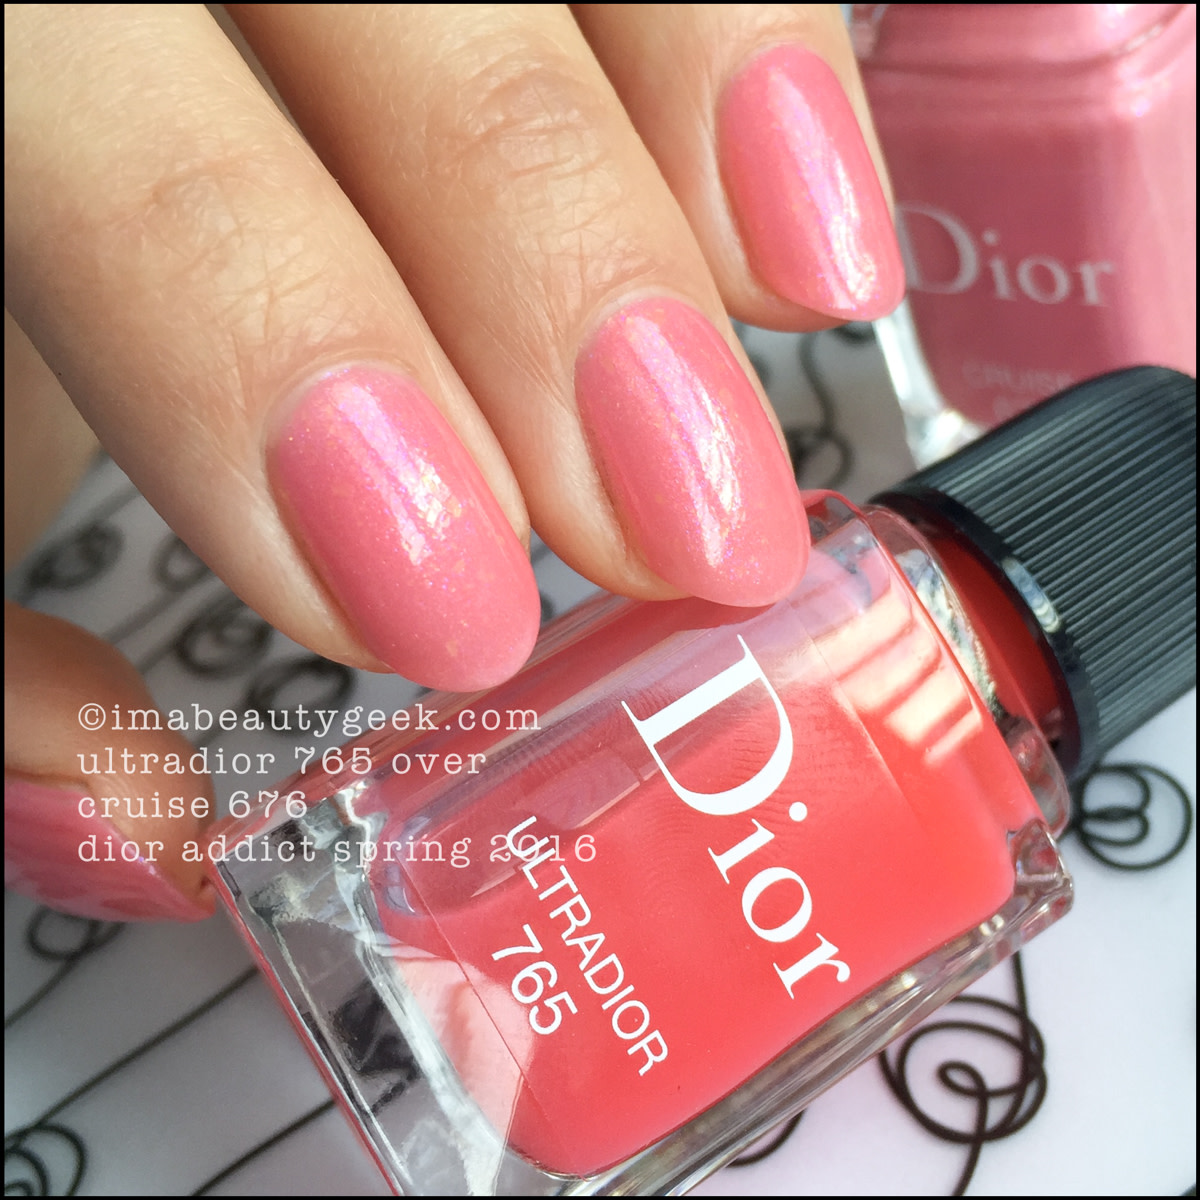 Dior Ultradior Vernis 765 over Cruise 676_Dior Addict Collection Spring 2016